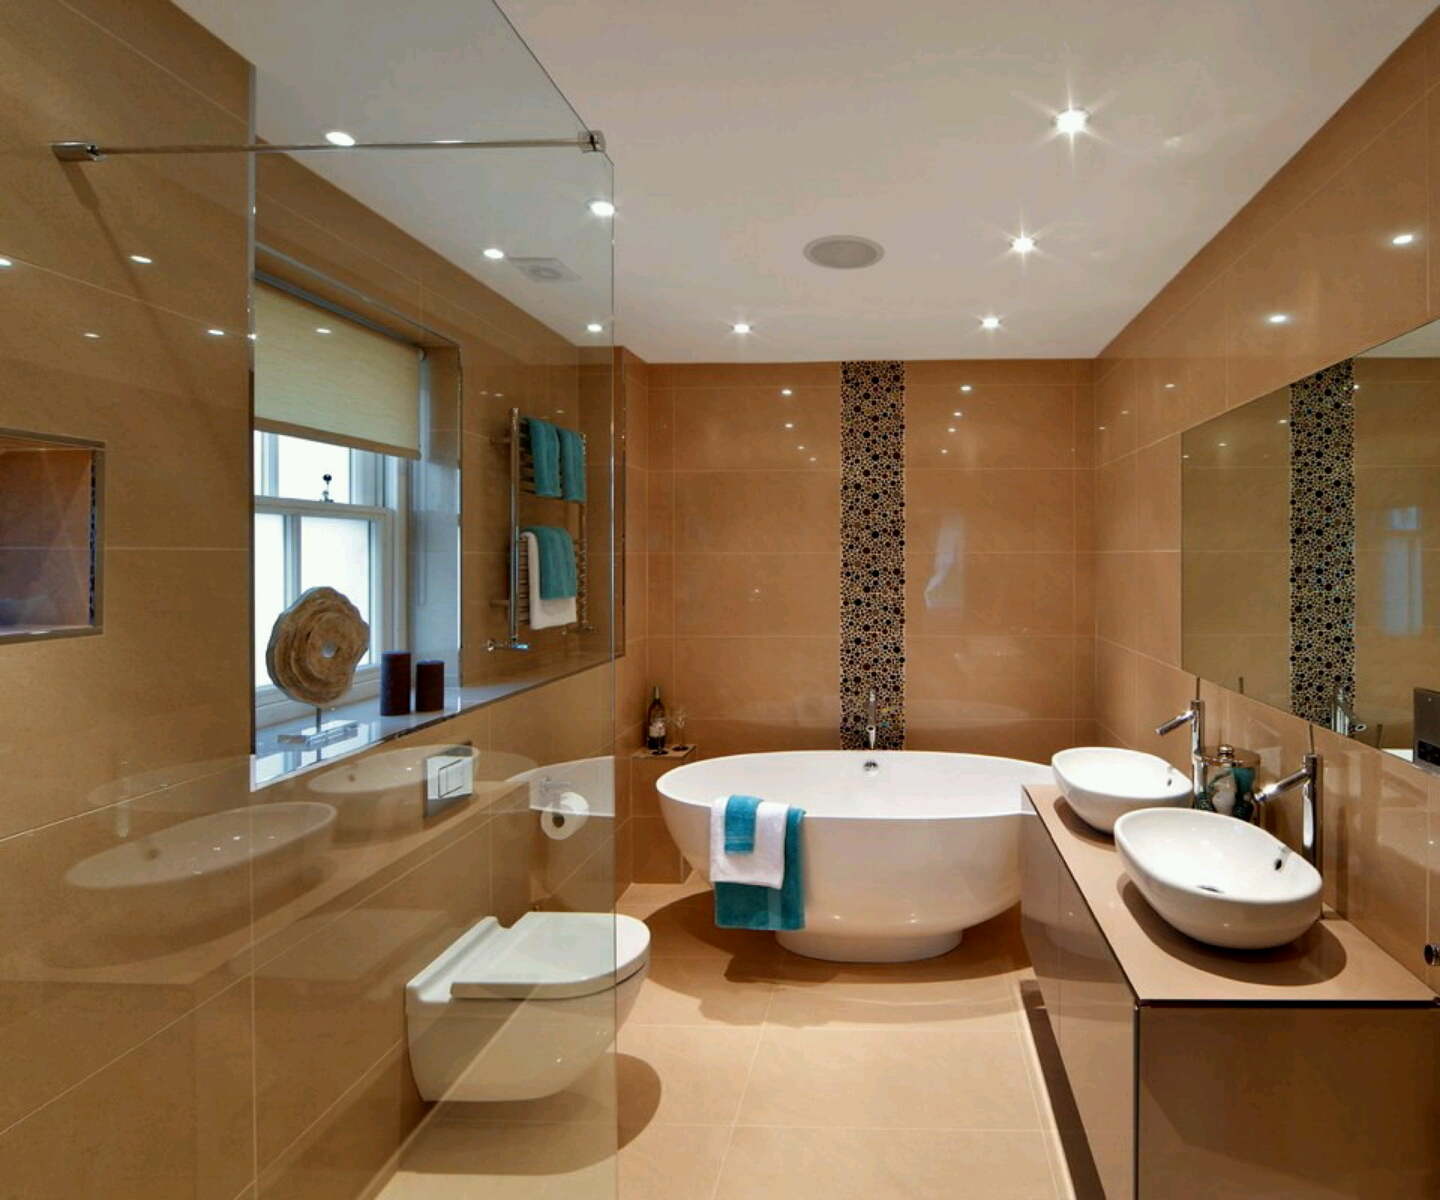 25 Small But Luxury Bathroom Design Ideas